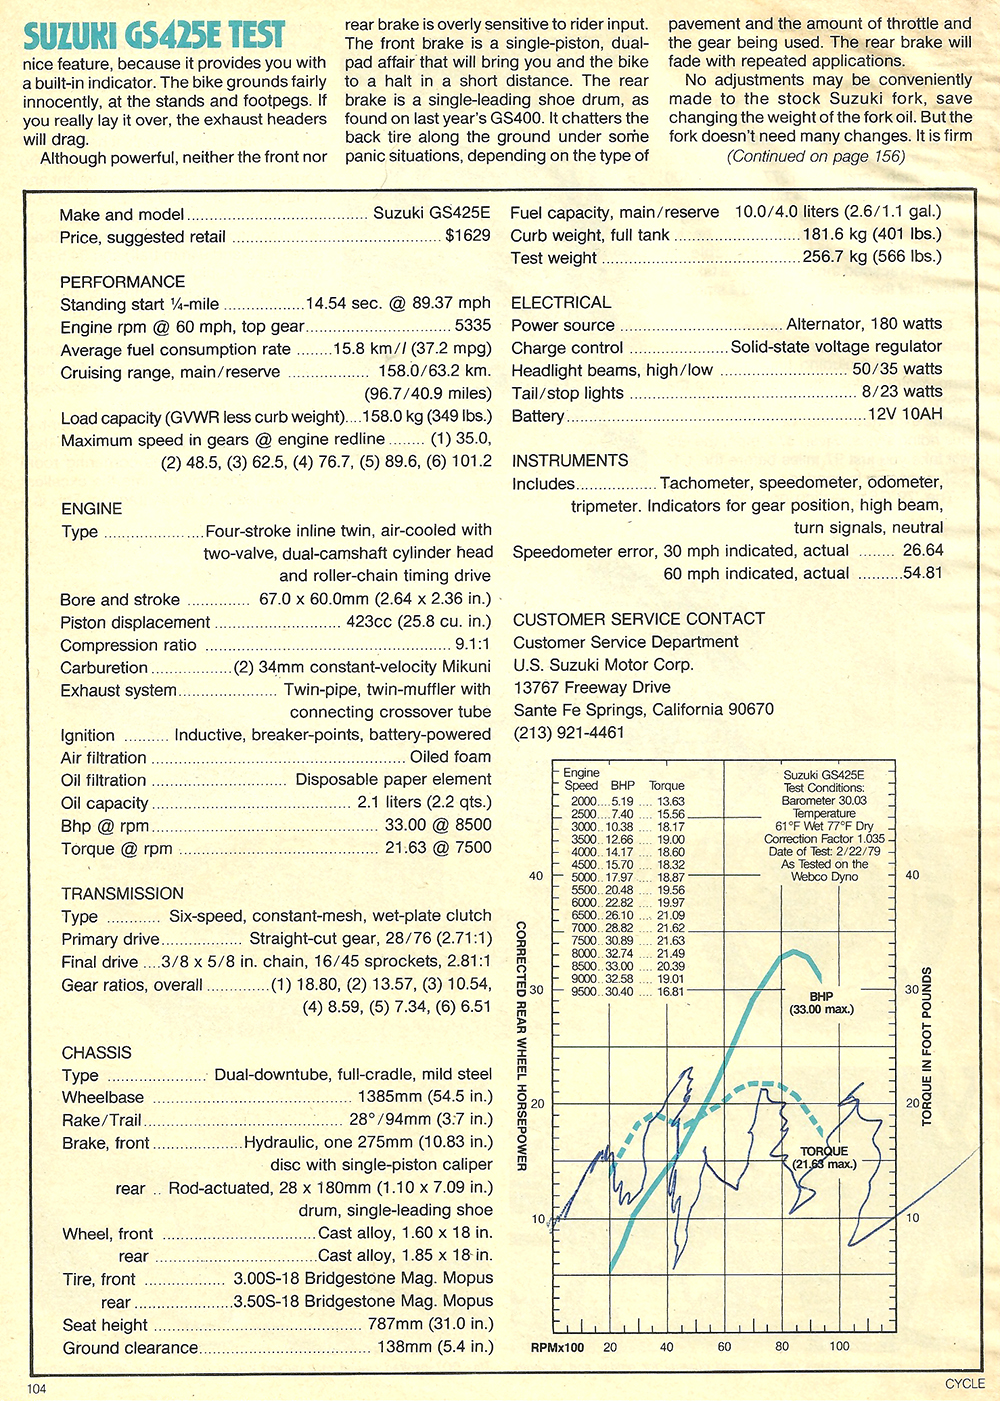 1979 Suzuki GS425E road test 07.jpg